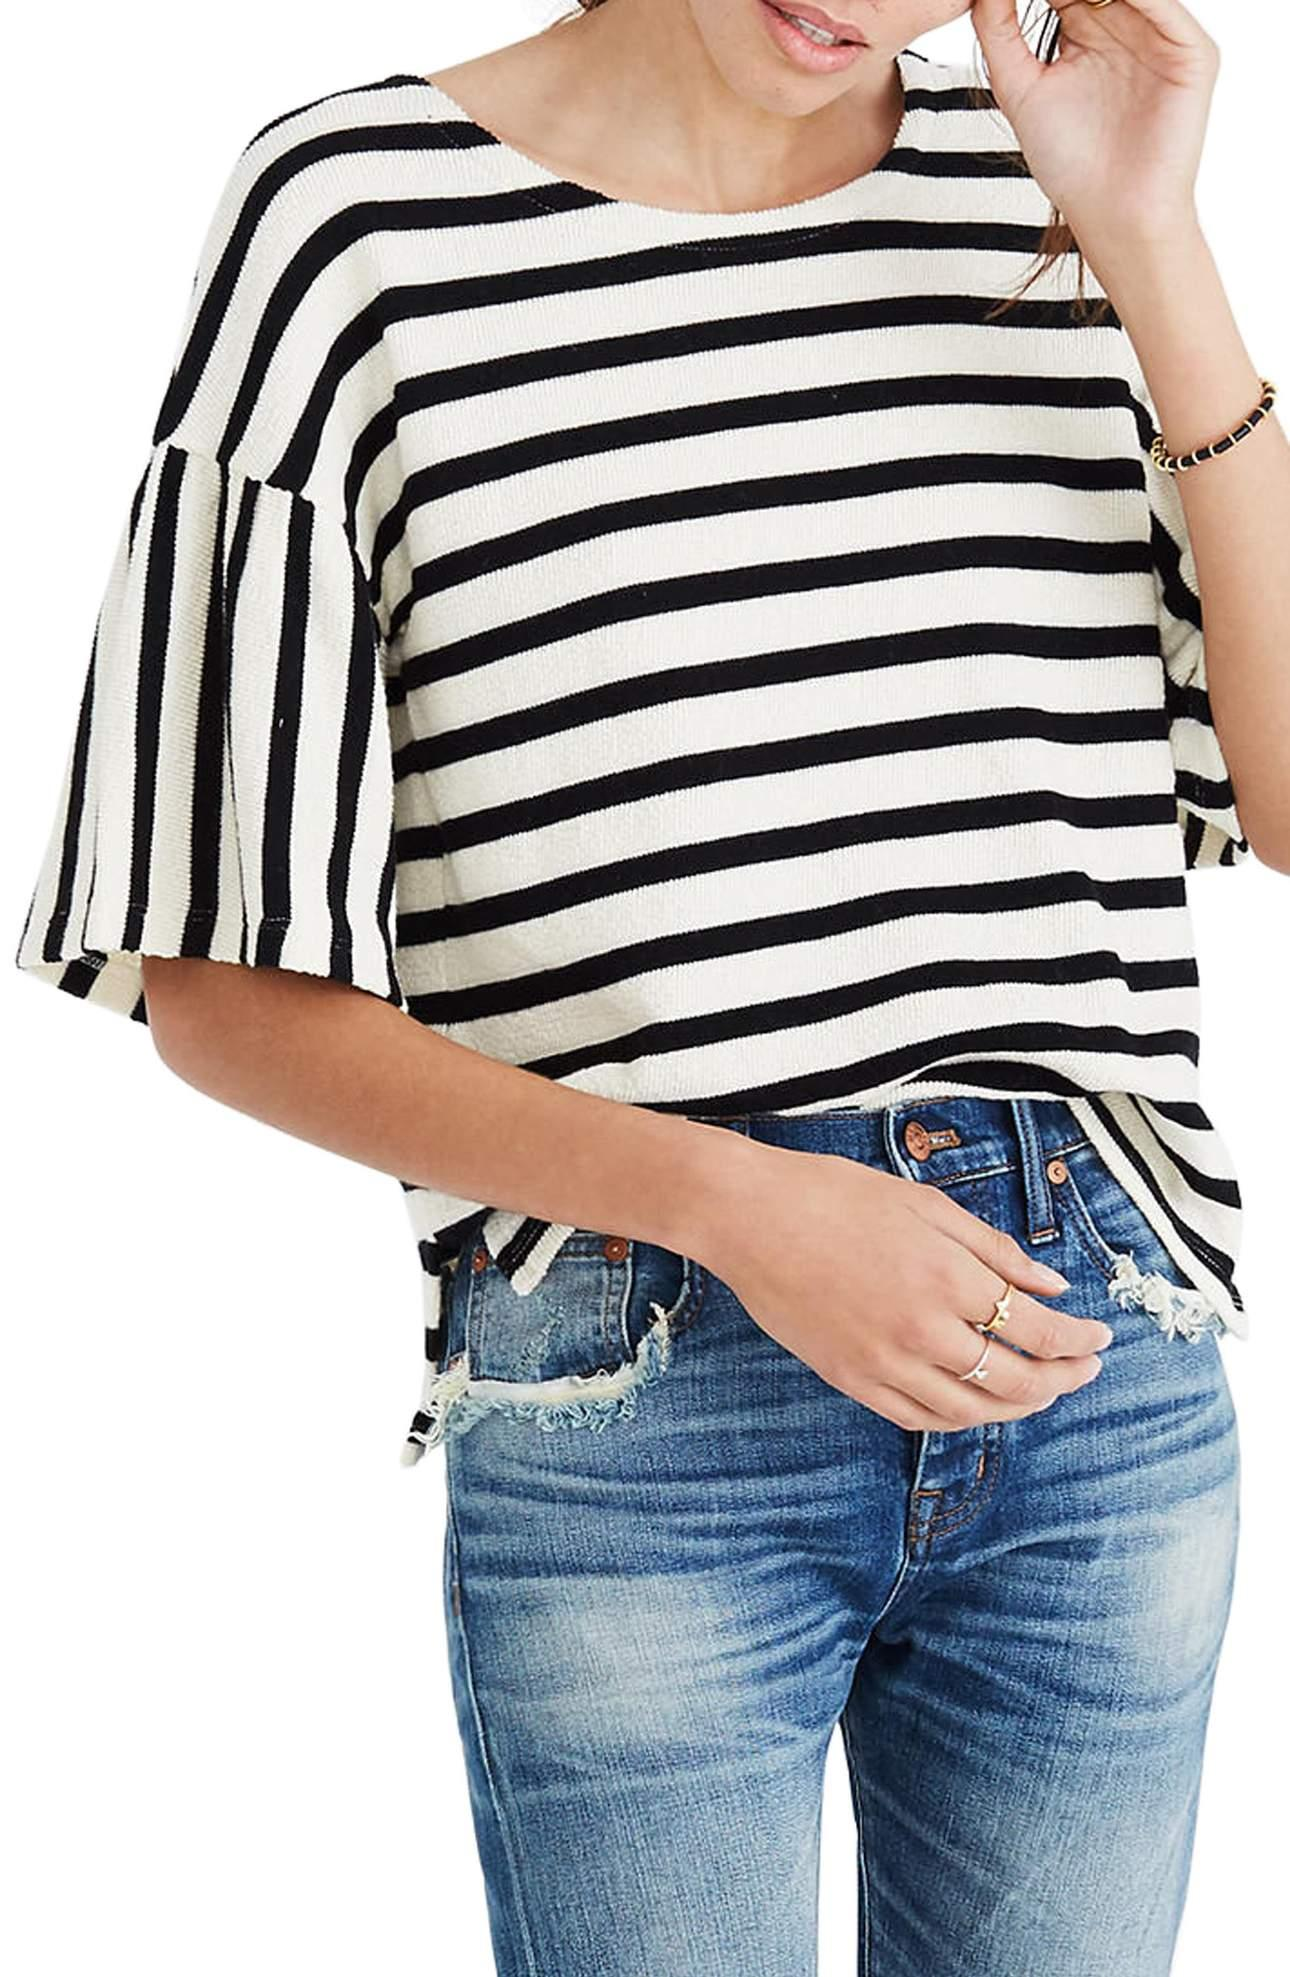 <p>I'm obsessed with this Stripe Bell Sleeve Top/MADEWELL.{&amp;nbsp;} Trendy bell sleeves and a boxy fit put a current spin on a striped top knit from thick, textured cotton. $45.00 at MADEWELL. (Image: Nordstrom){&amp;nbsp;}</p><p></p>